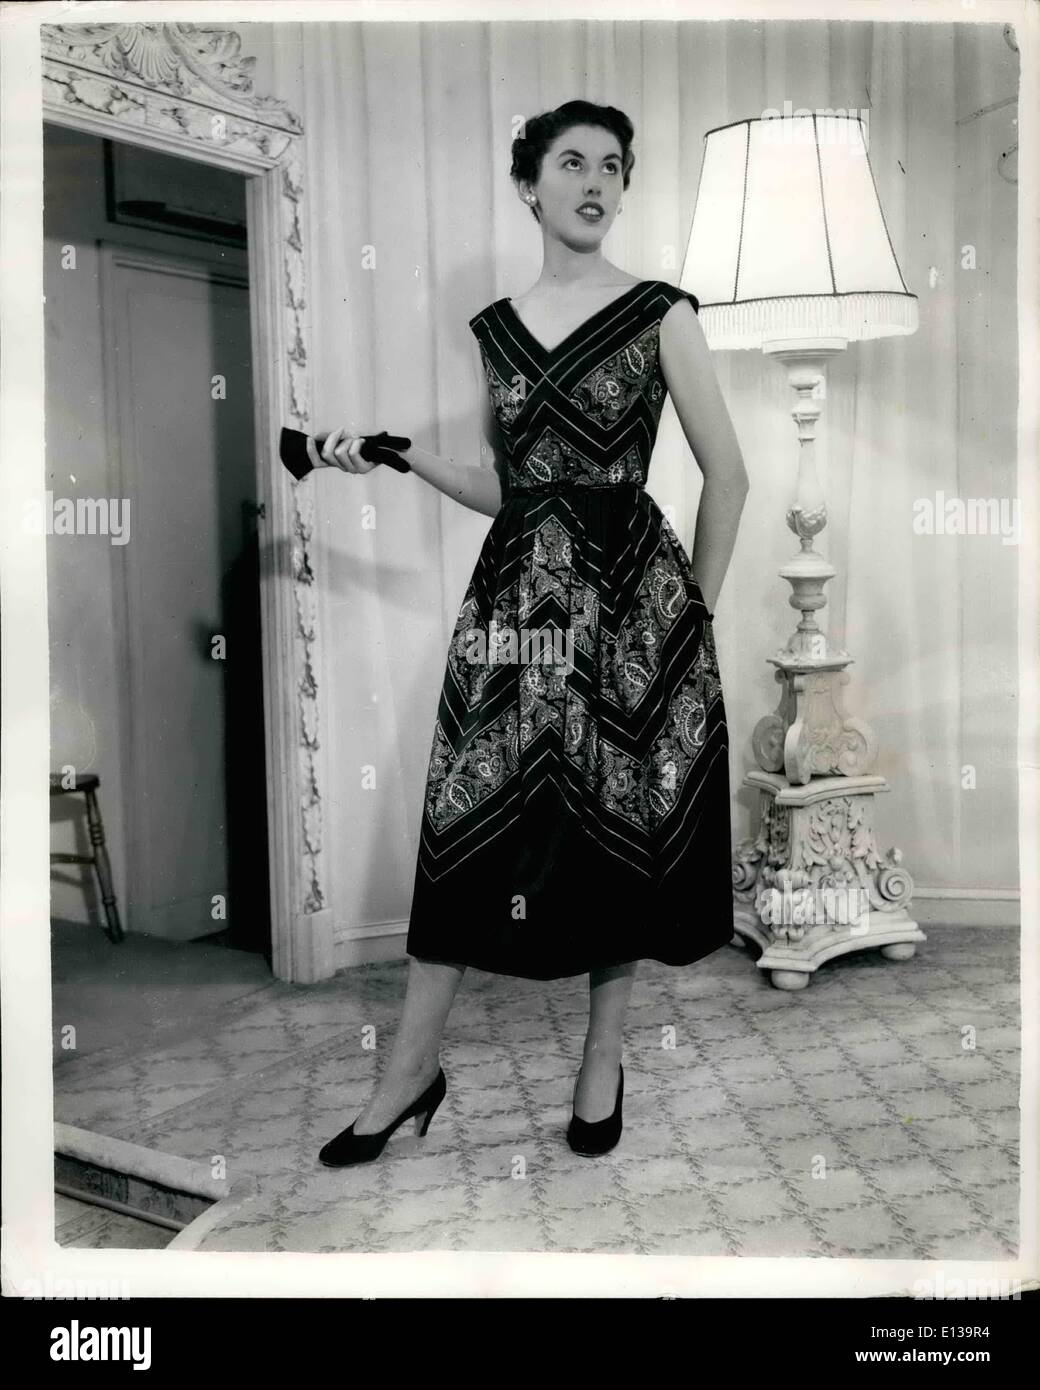 Feb. 29, 2012 - NOT TO BE PUBLISHED UNTIL 23RD. NOV 1953 COCKTAIL DRESS FOR WEAR BY THE QUEEN''S lady in waiting during the royal australian tour.. KEYSTONE PHOTO SHOWS:- A cocktail dress for boat wear in black cotton with a deep 'V' and full skirt.. It is one of the dresses designed by Madame D Lange and shown at the Fortnum and Mason Showrooms,Picadilly- and is for wear by Lady Egerton the Queen's Lady in Waiting during the Royal Australian Tour. - Stock Image